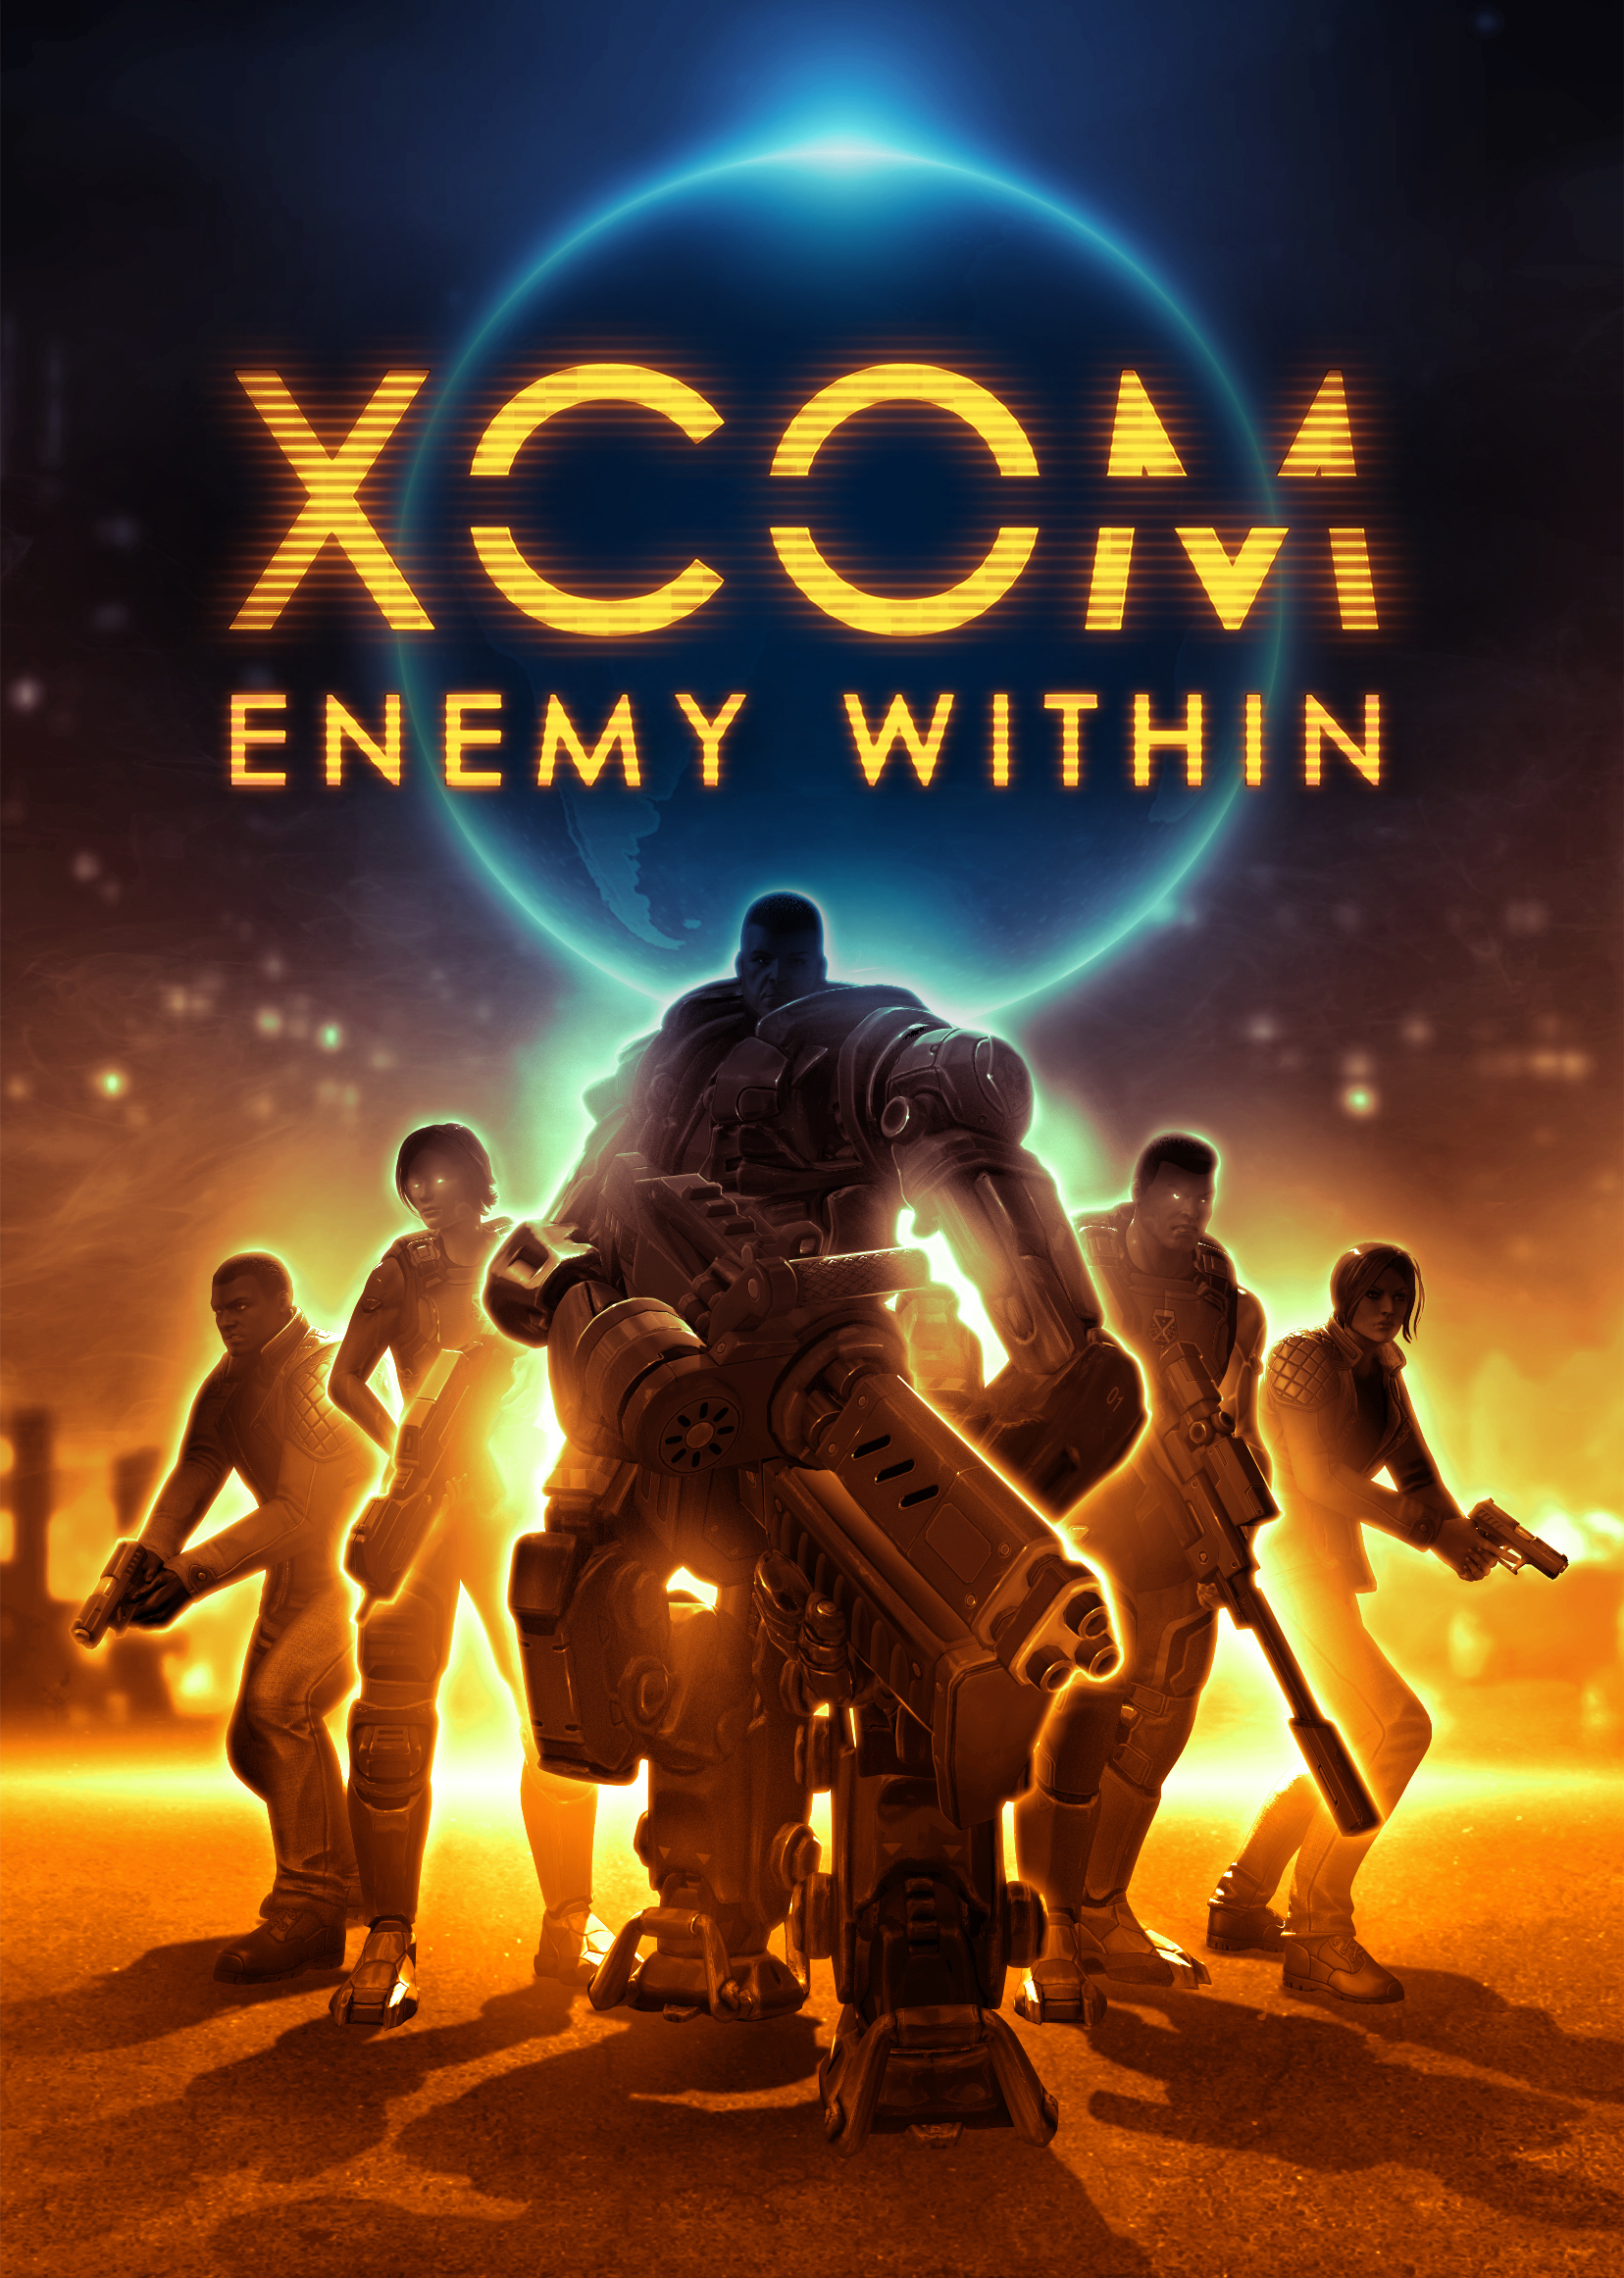 2K and Firaxis Games announced today that XCOM®: Enemy Within, the expanded experience for the Game of the Year* award-winning strategy title, XCOM: Enemy Unknown, is available today in North America and will be available internationally on November 15, 2013 for Windows PC, Xbox 360 games and entertainment system from Microsoft and PlayStation®3 computer entertainment system. (Graphic: Business Wire)